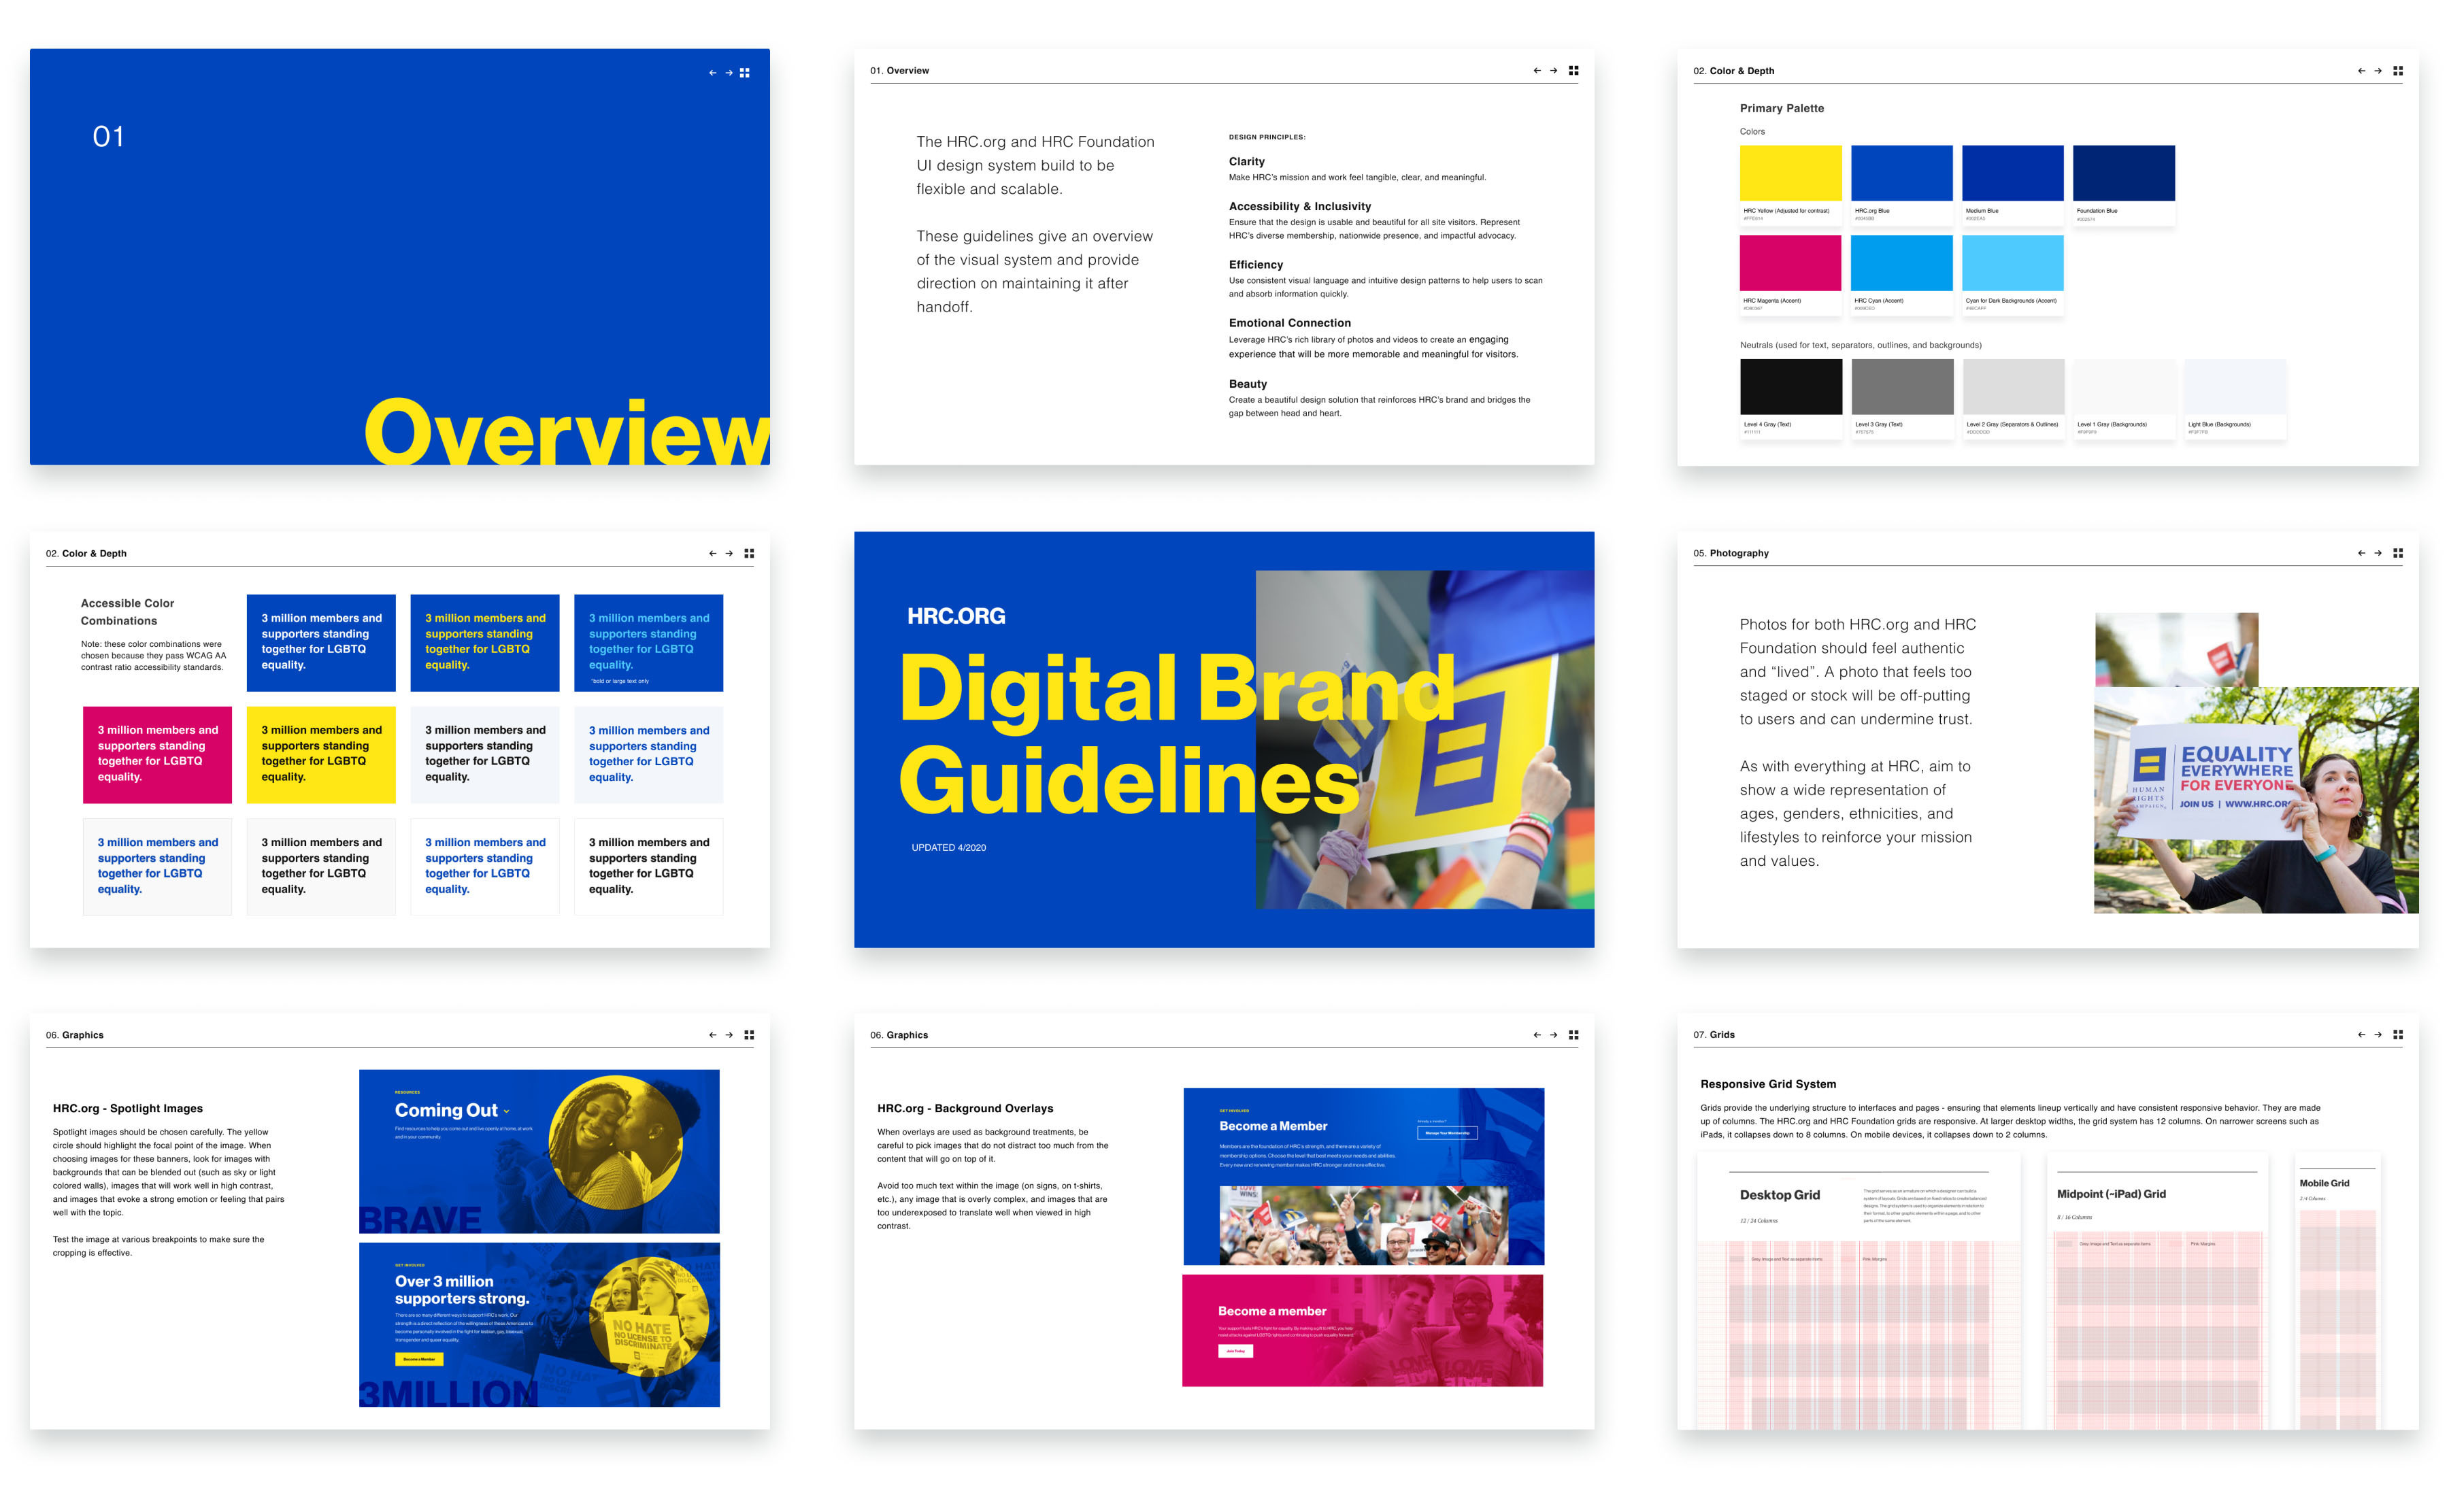 Screenshots from the Digital Brand Guide created for HRC